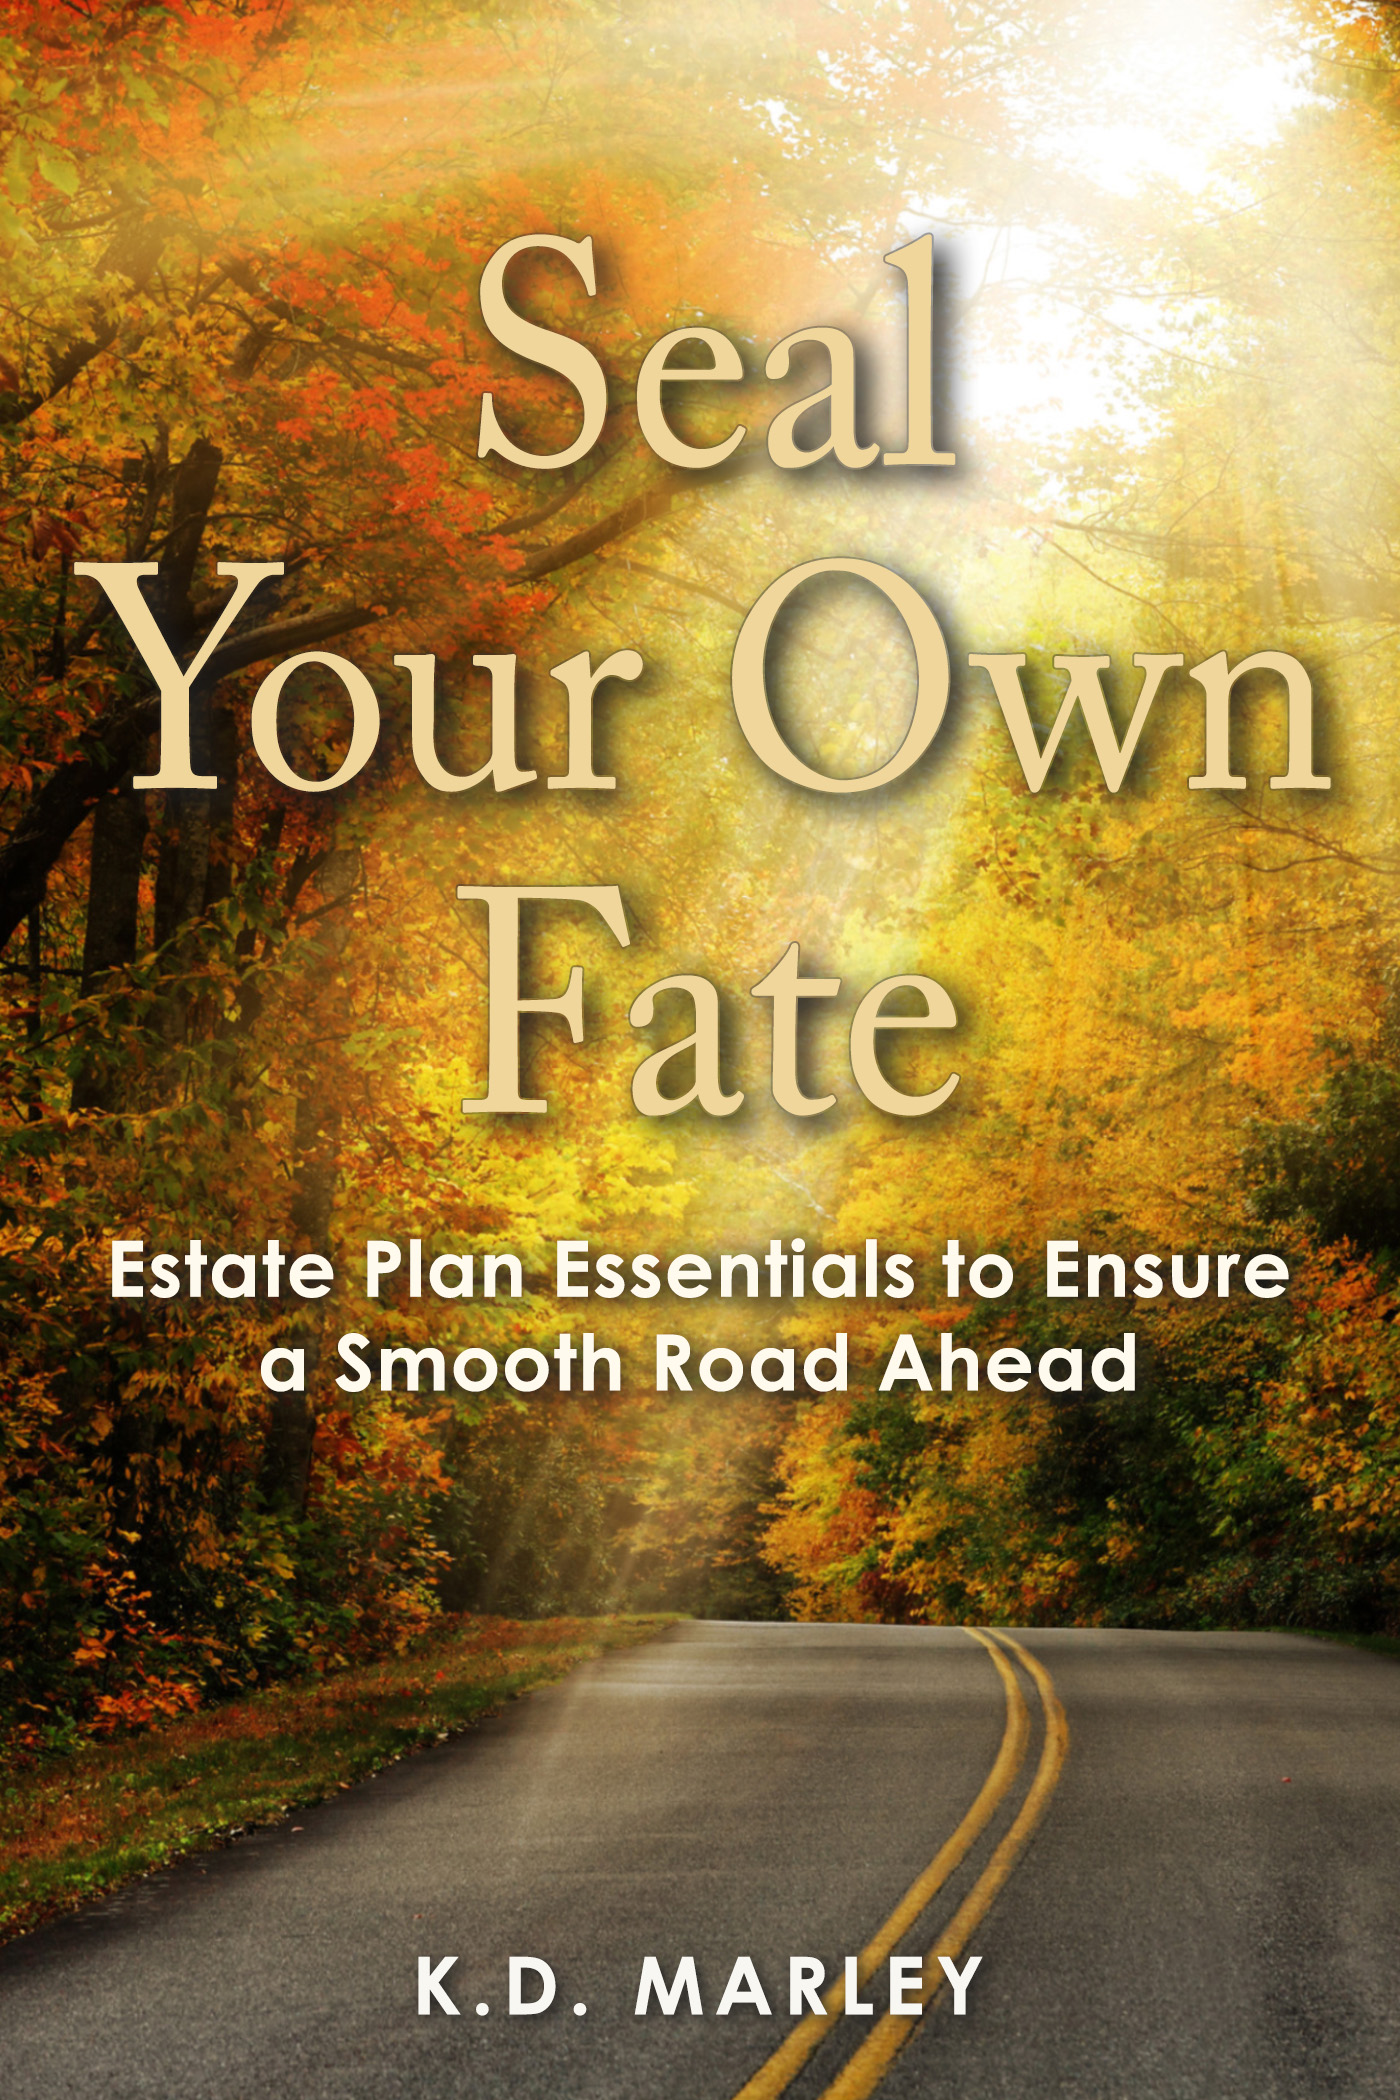 Seal Your Own Fate: Estate Plan Essentials to Ensure a Smooth Road Ahead